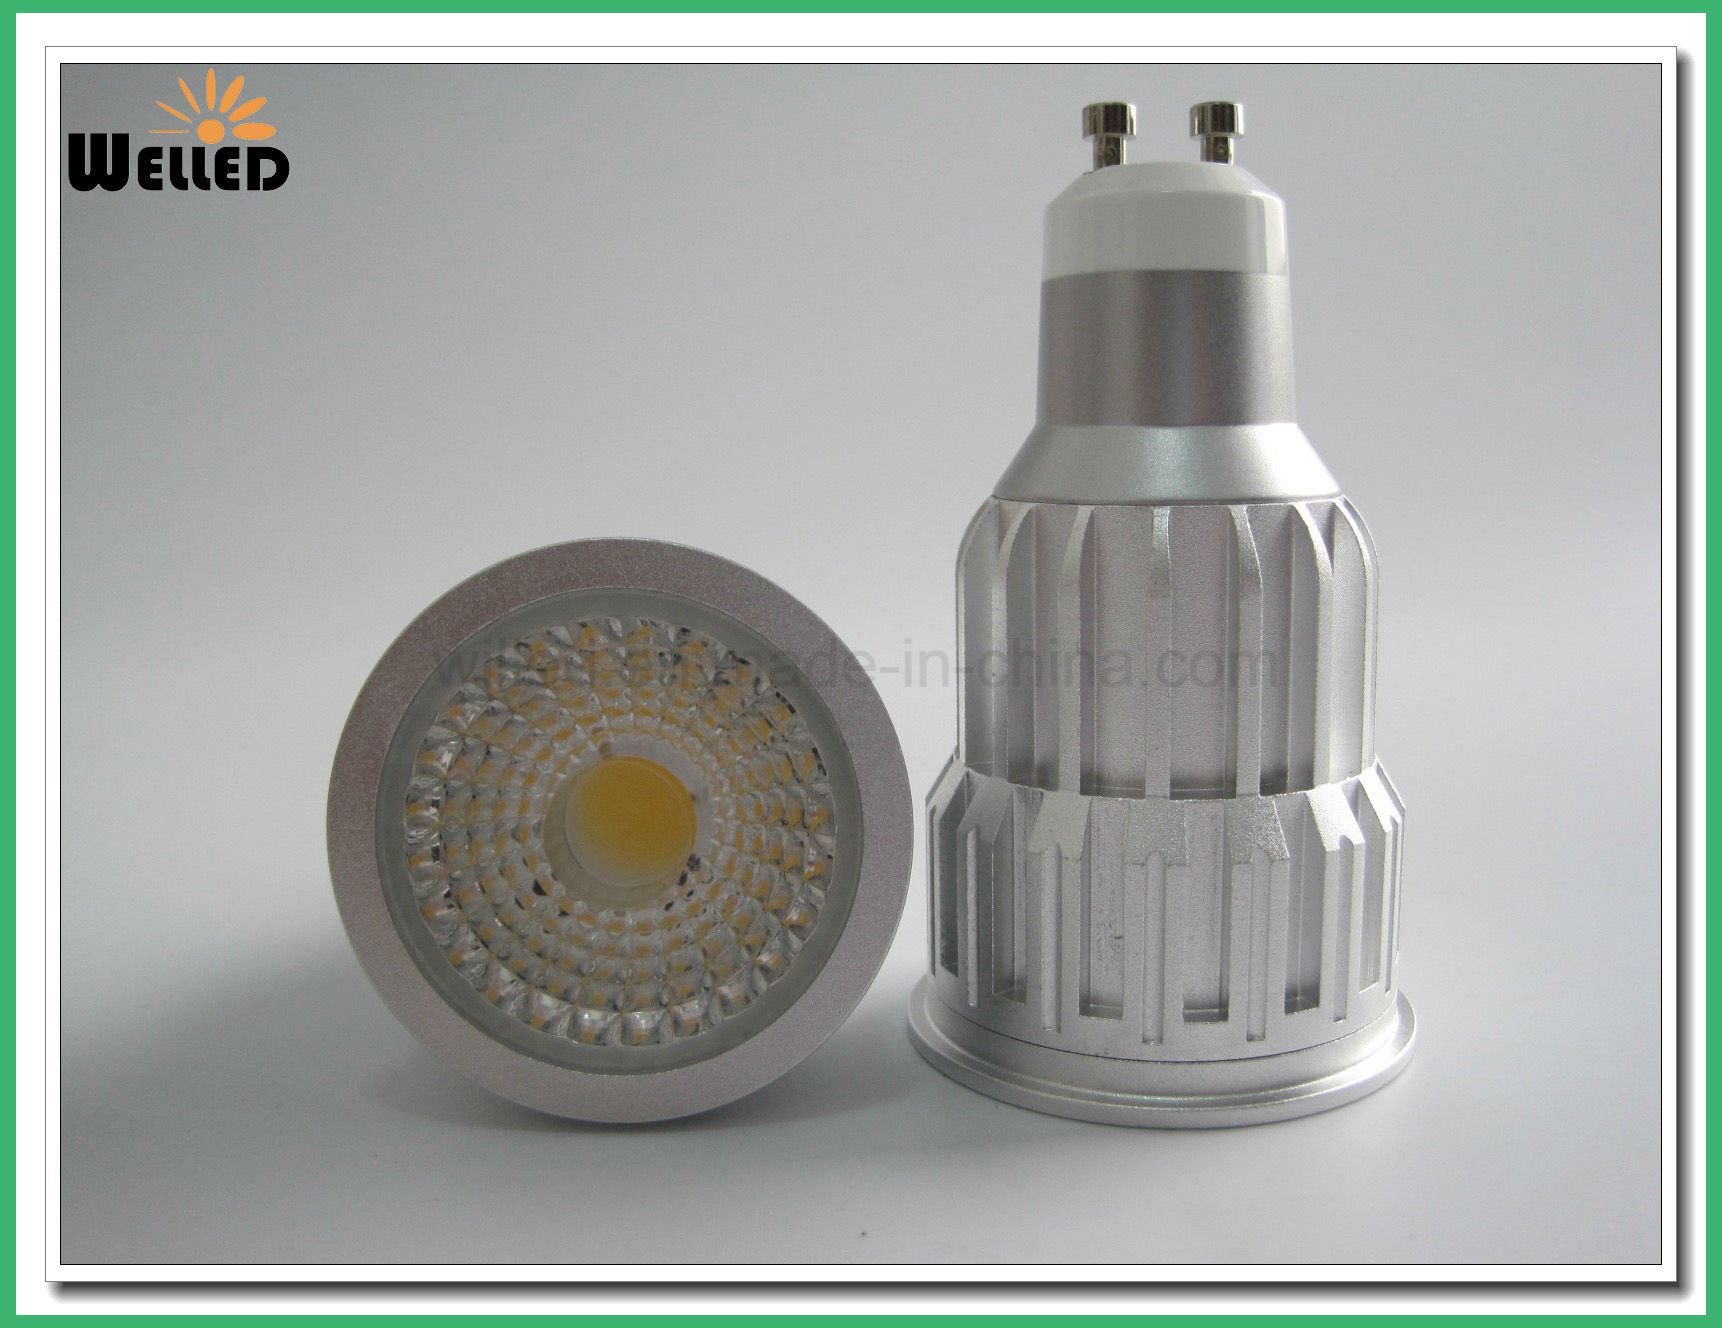 Dimmable 10W LED GU10 Spotlight with CREE COB LED Light